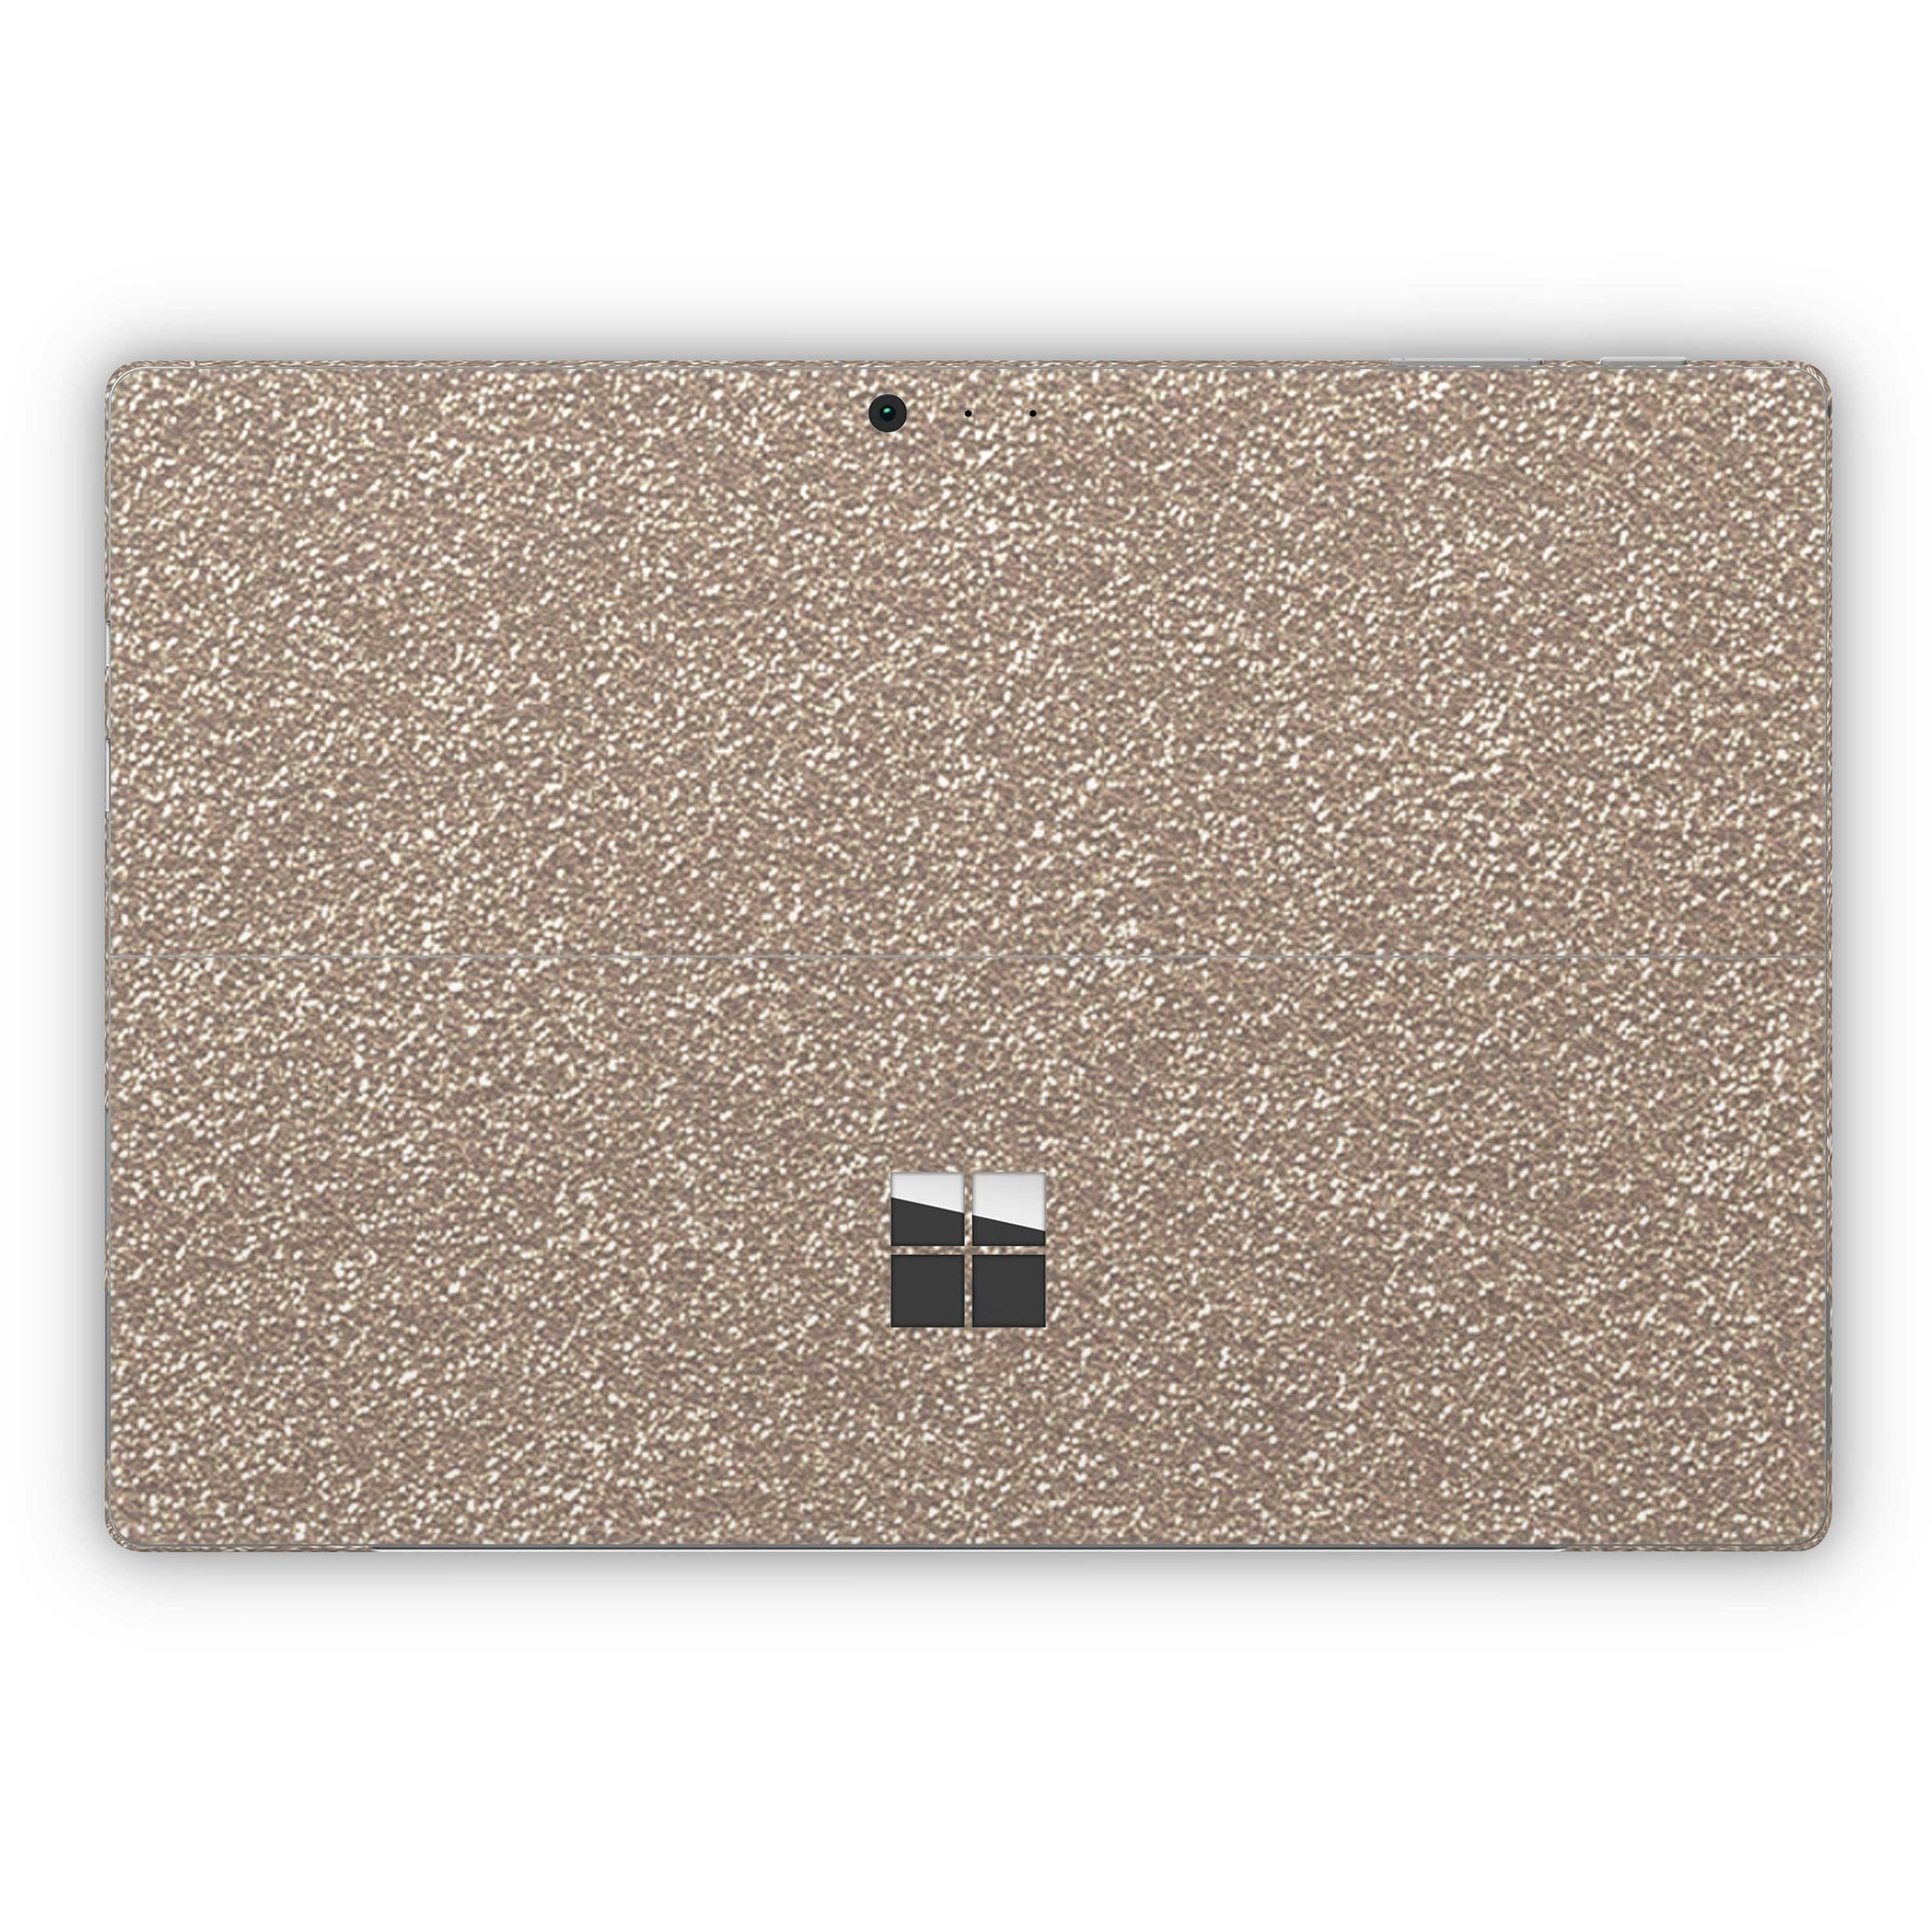 Rose Glitter Surface Pro 5 and Surface Pro 6 Skin